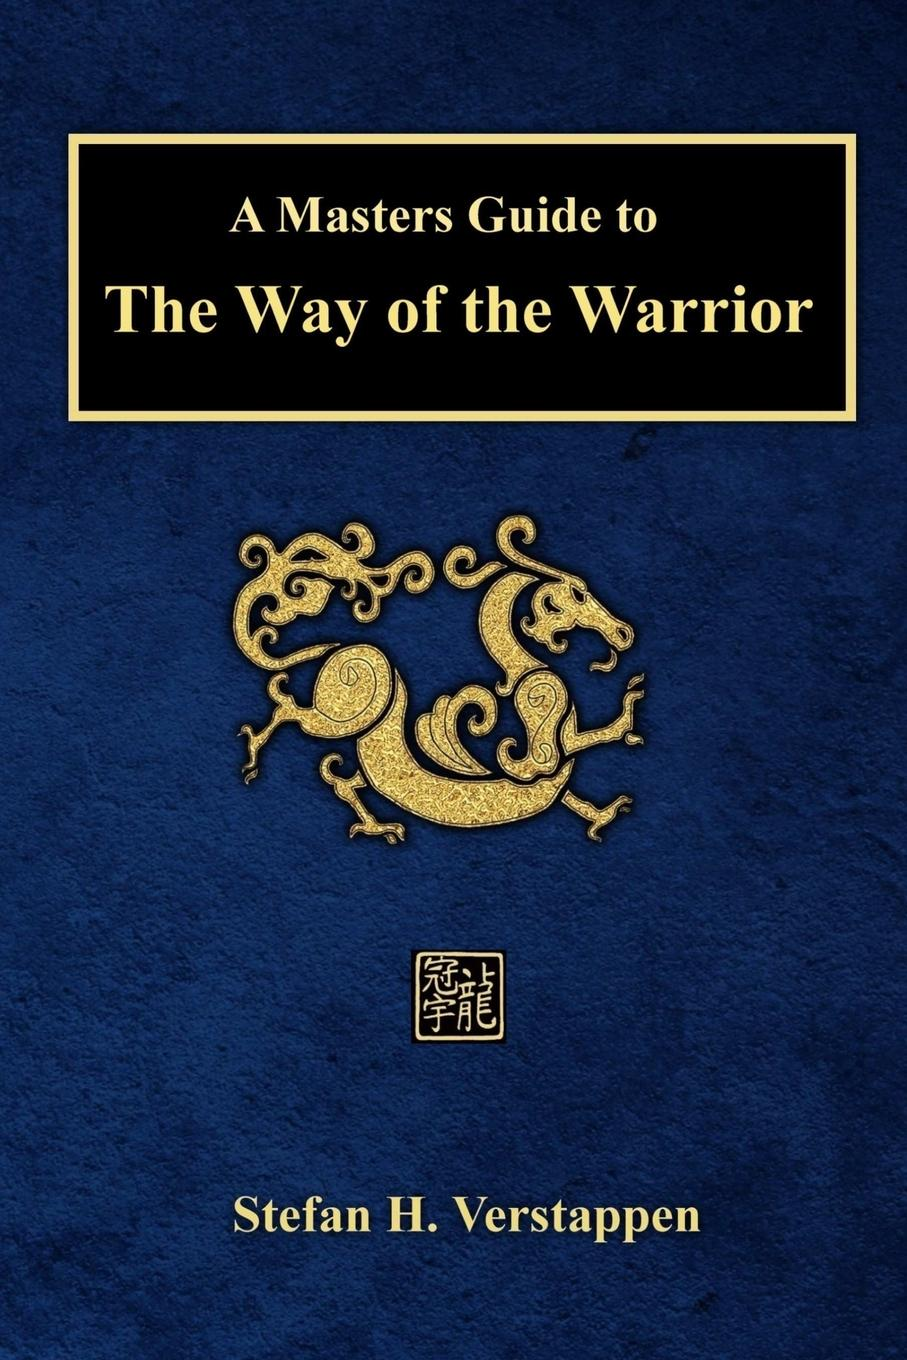 stefan verstappen A Masters Guide to The Way of the Warrior a complete guide to the buddhist path